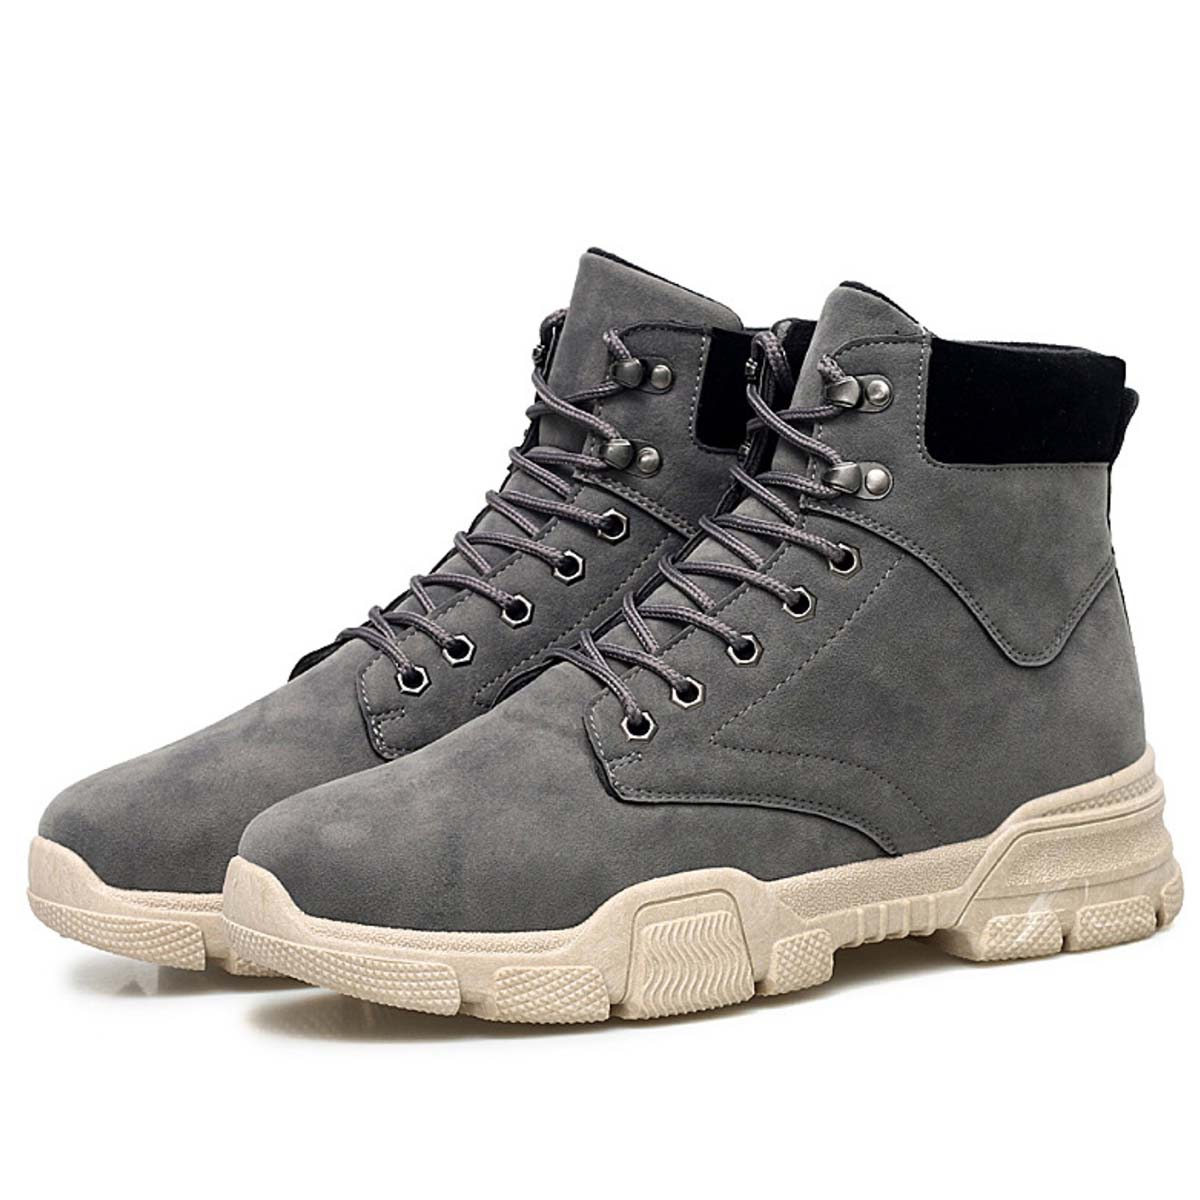 Men s Casual Lace Up Suede Ankle Flat Boots Male Winter Thicken Round  Rubber Toe Non-slip Waterproof Outdoor Motorcycle Boots f32676f62